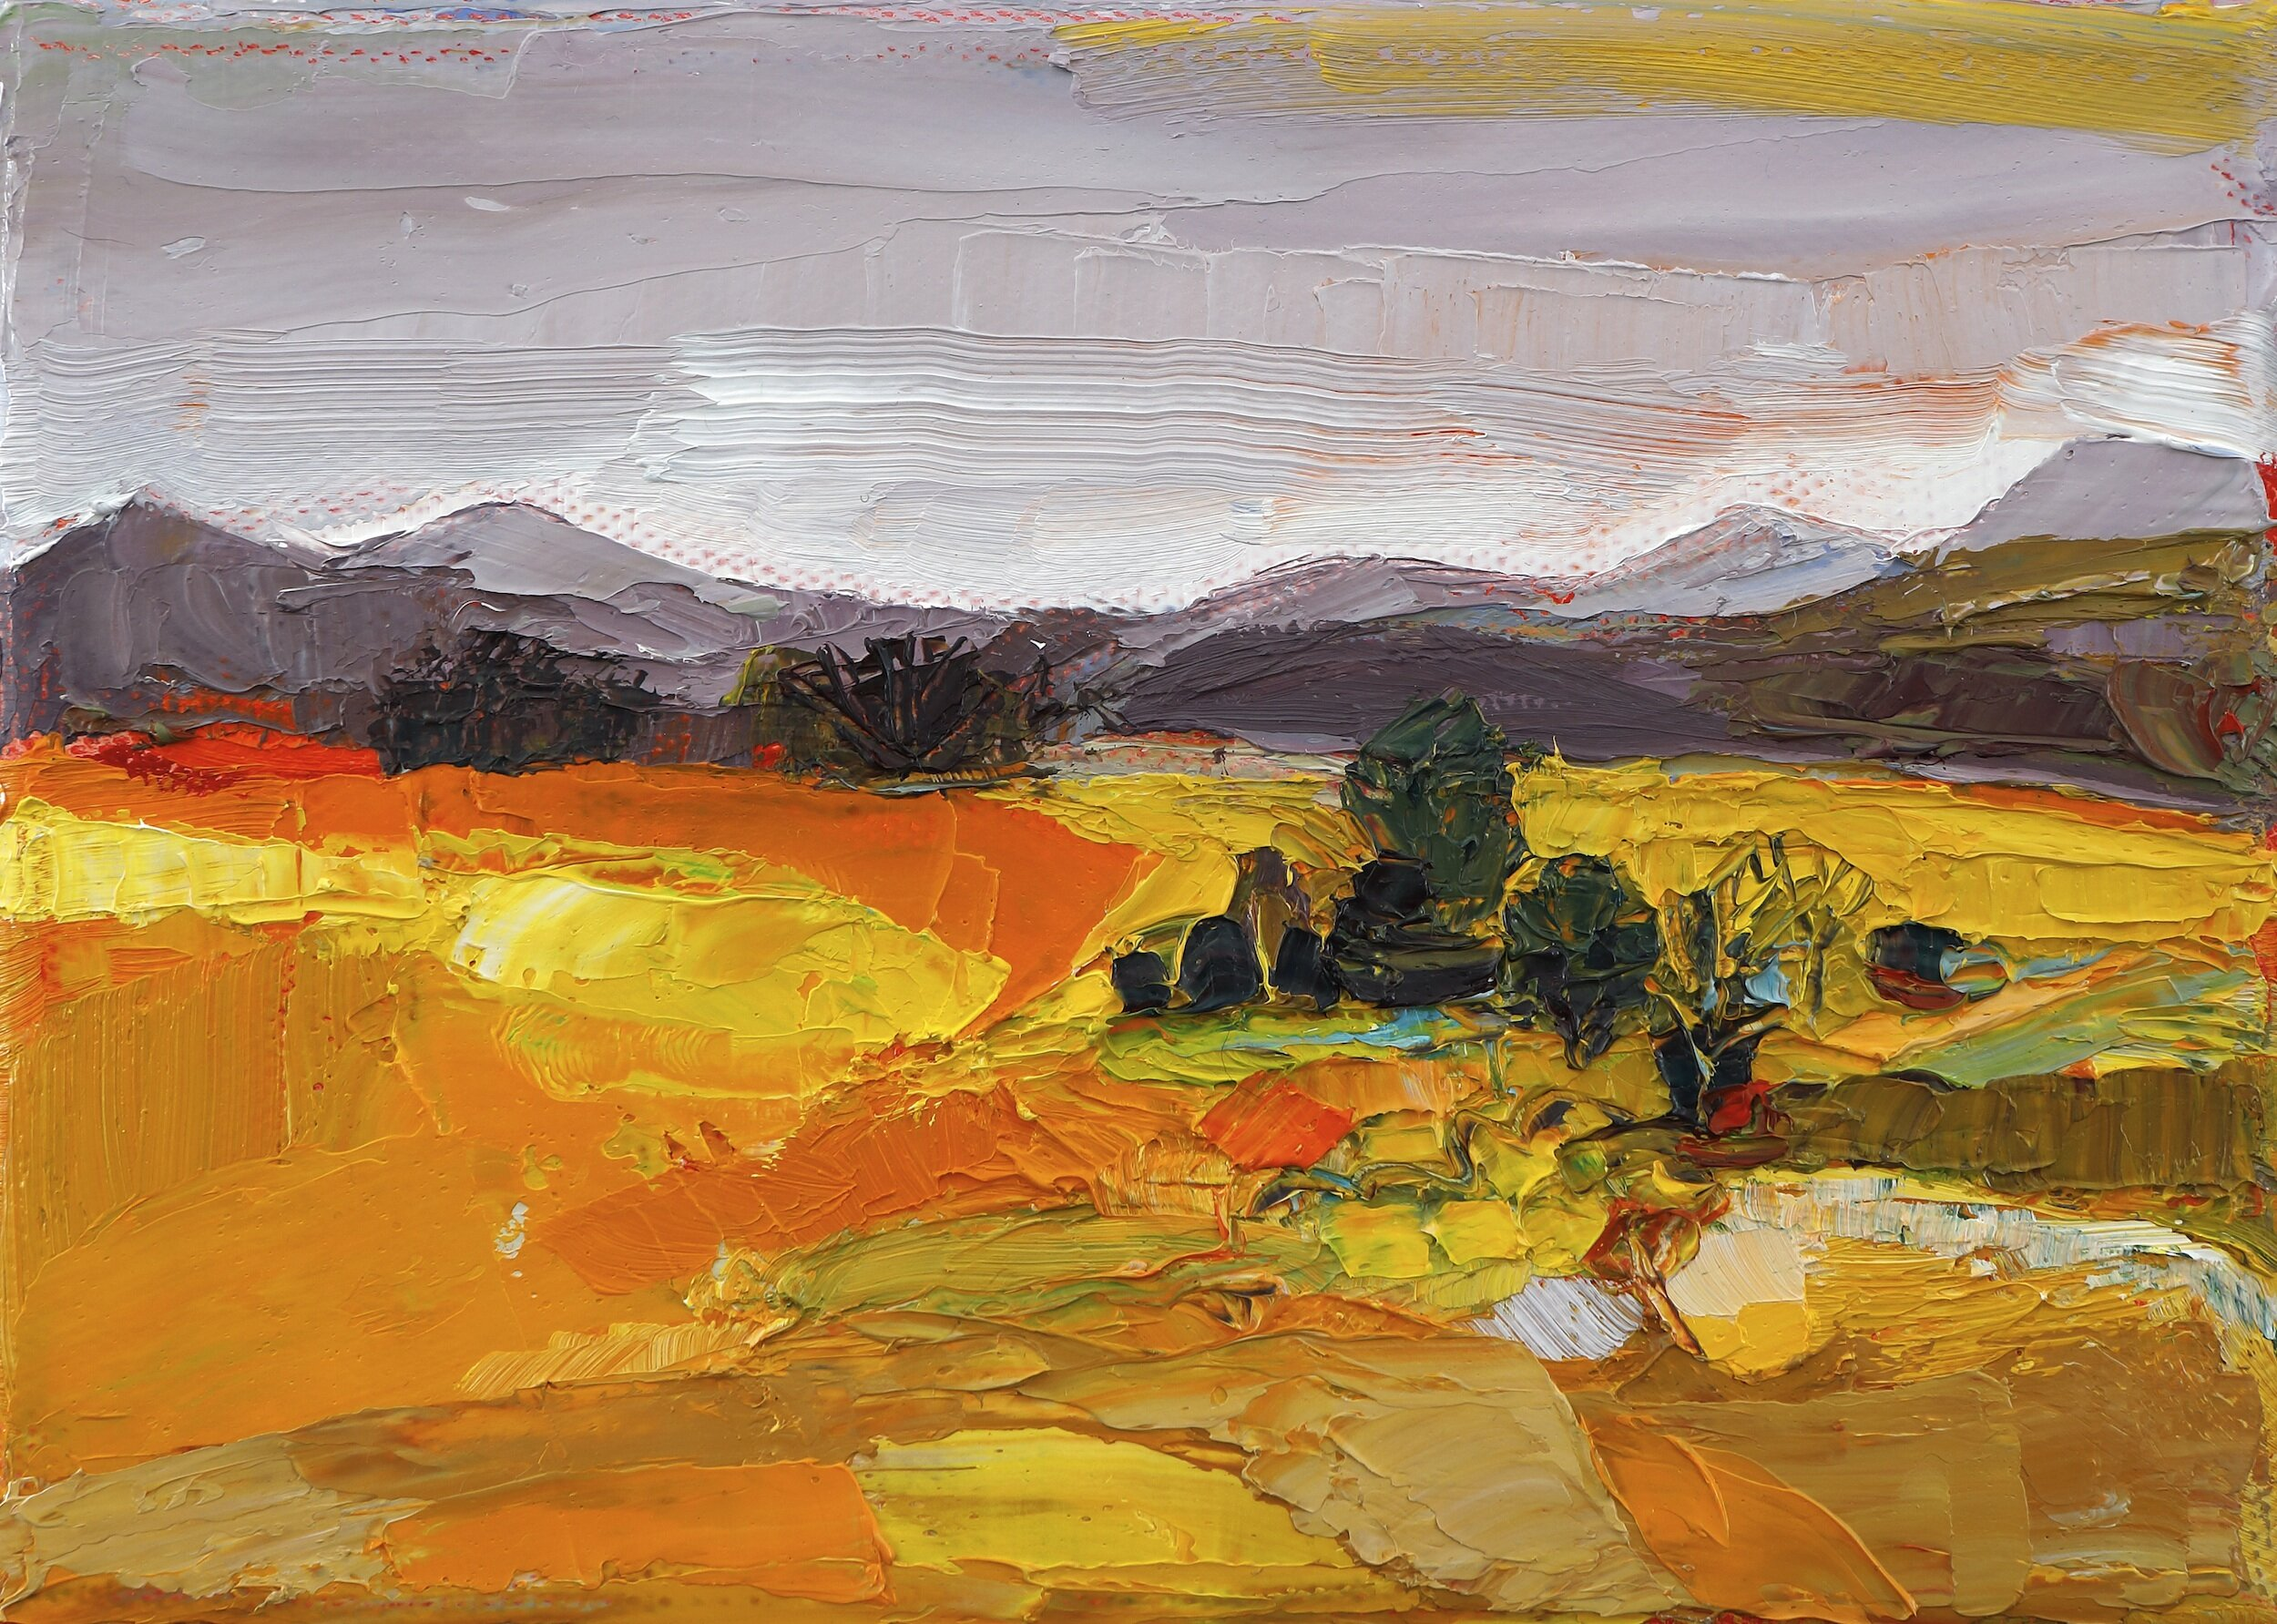 Title: On the Plain  Size: 5x7in  Medium: Oil on Canvas  Price: £650